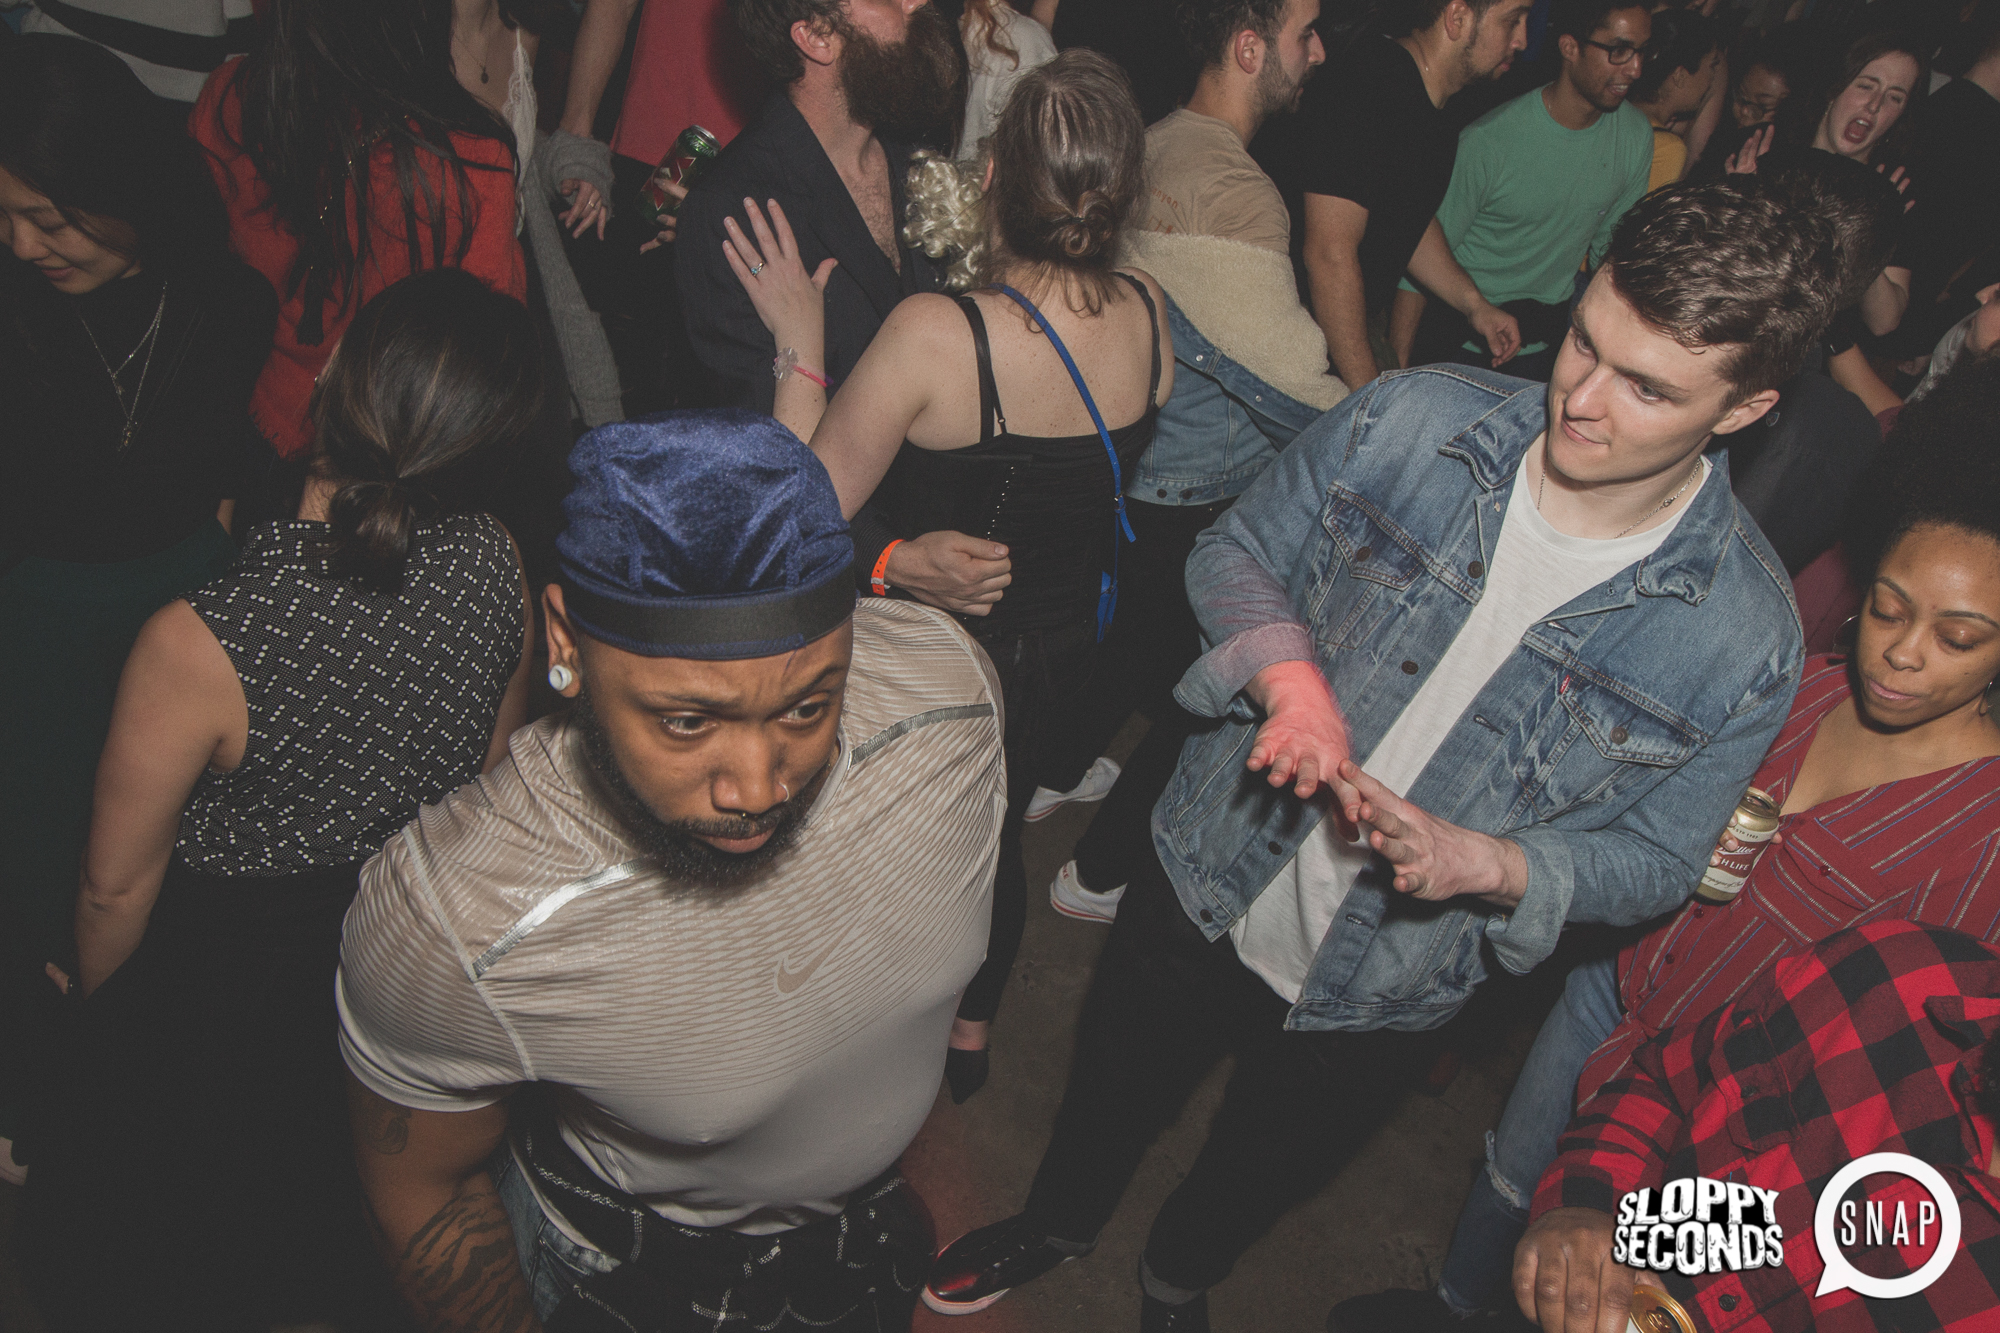 37Sloppy Seconds March2019 oh snap kid atlanta.JPG